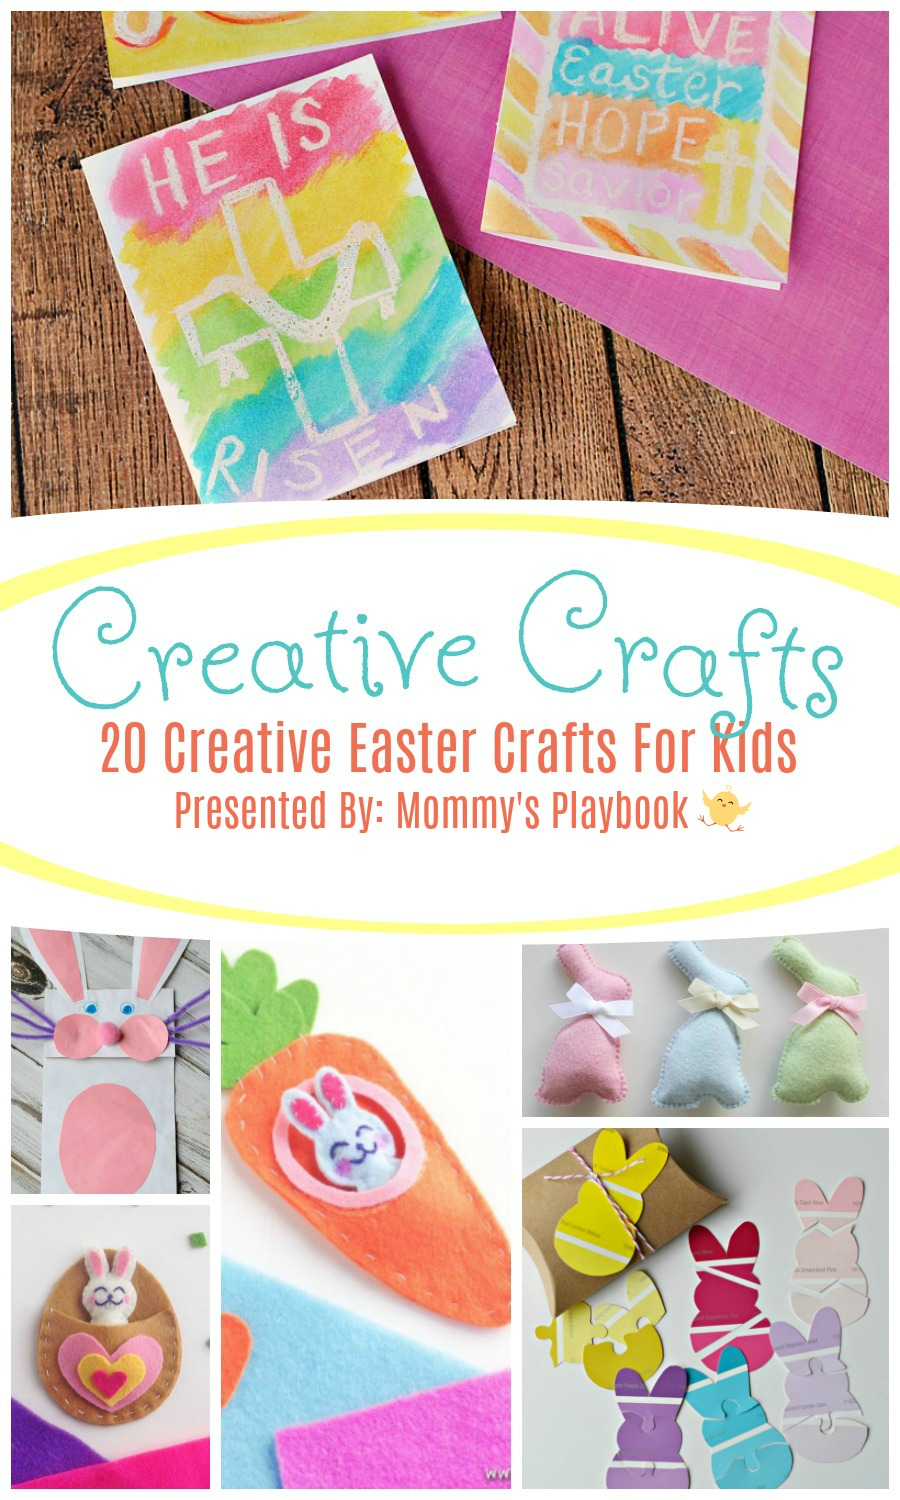 20 Creative Easter Crafts for Kids #Craft #CraftRoundup #Easter #EasterCrafts